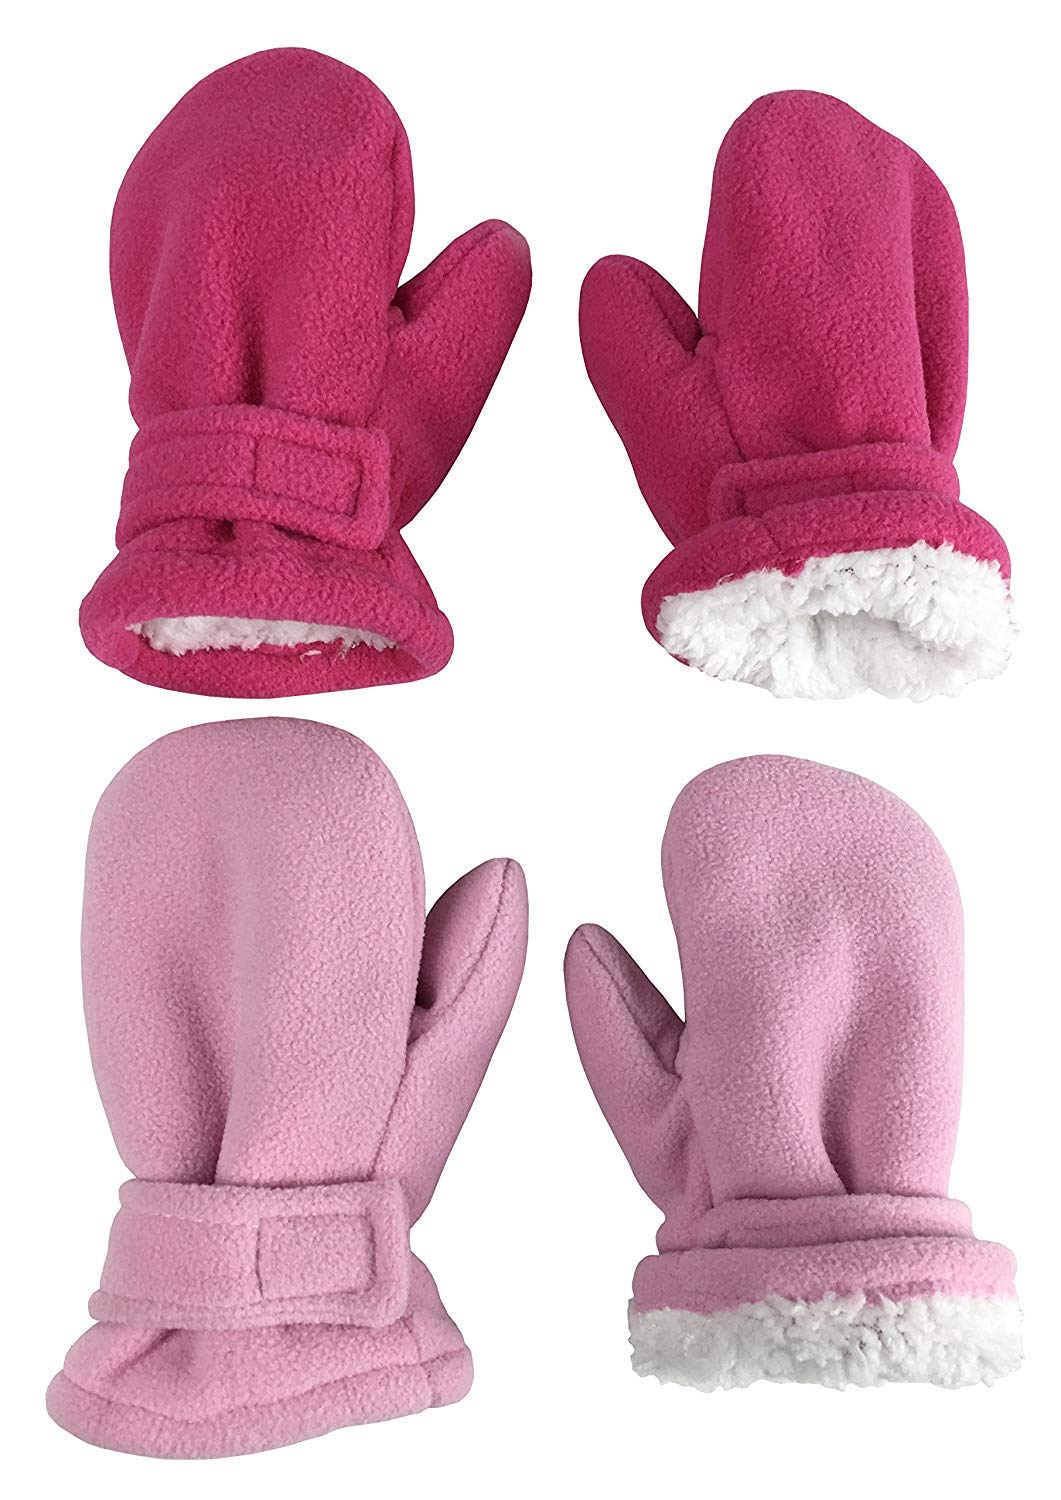 N'Ice Caps Little Kids and Baby Easy-On Sherpa Lined Fleece Mittens - 2 Pair Pack (Pink/Fuchsia Pack, 4-6 Years)